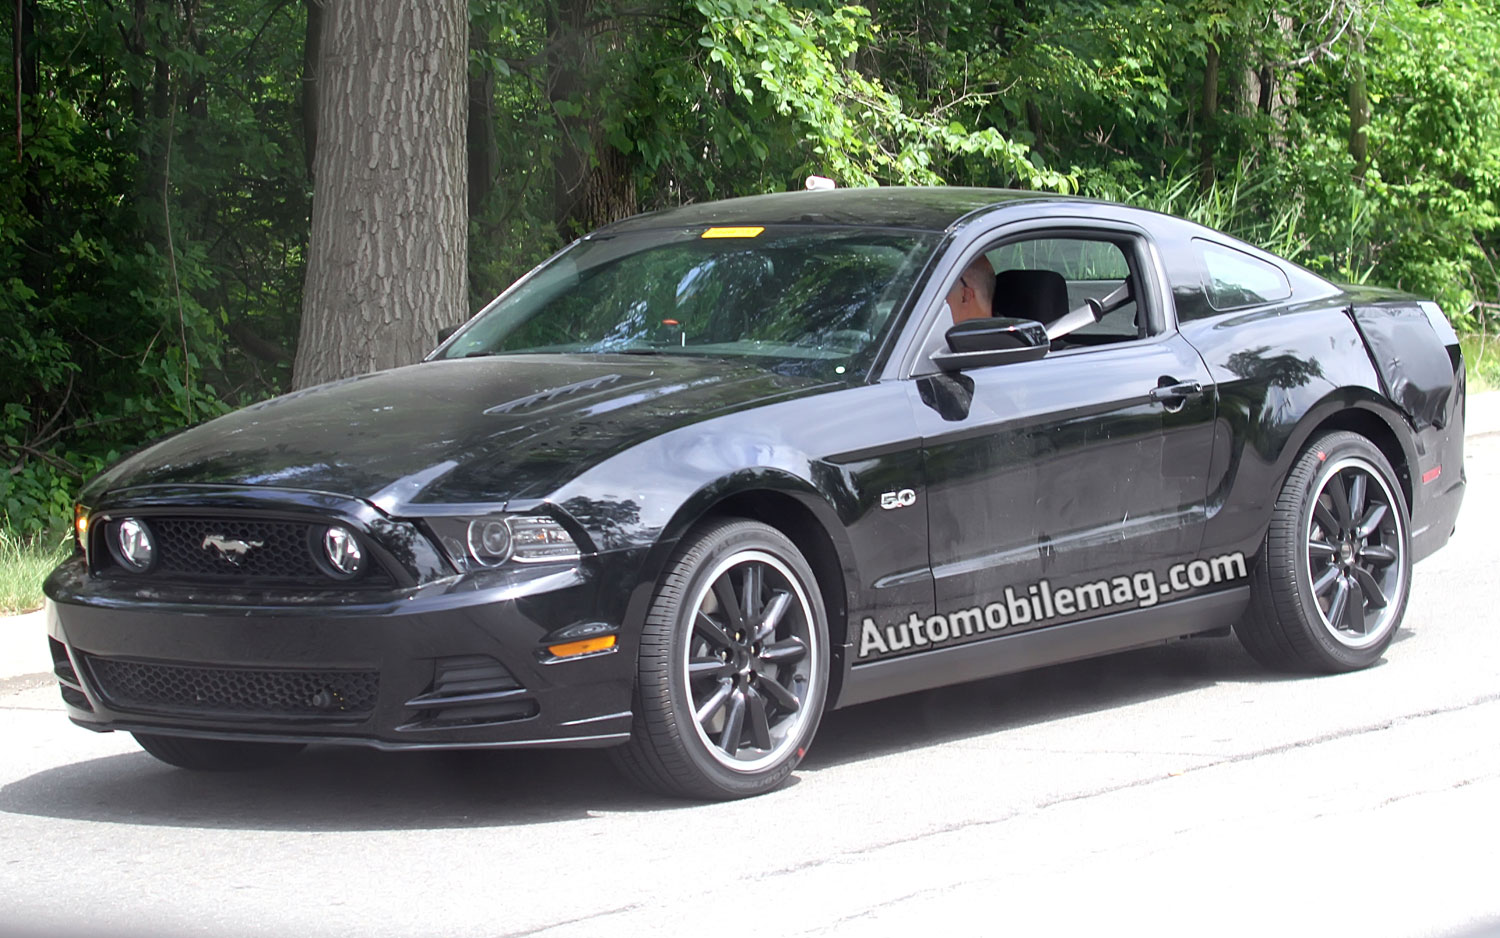 2015 Ford Mustang Prototype Mule Front View12